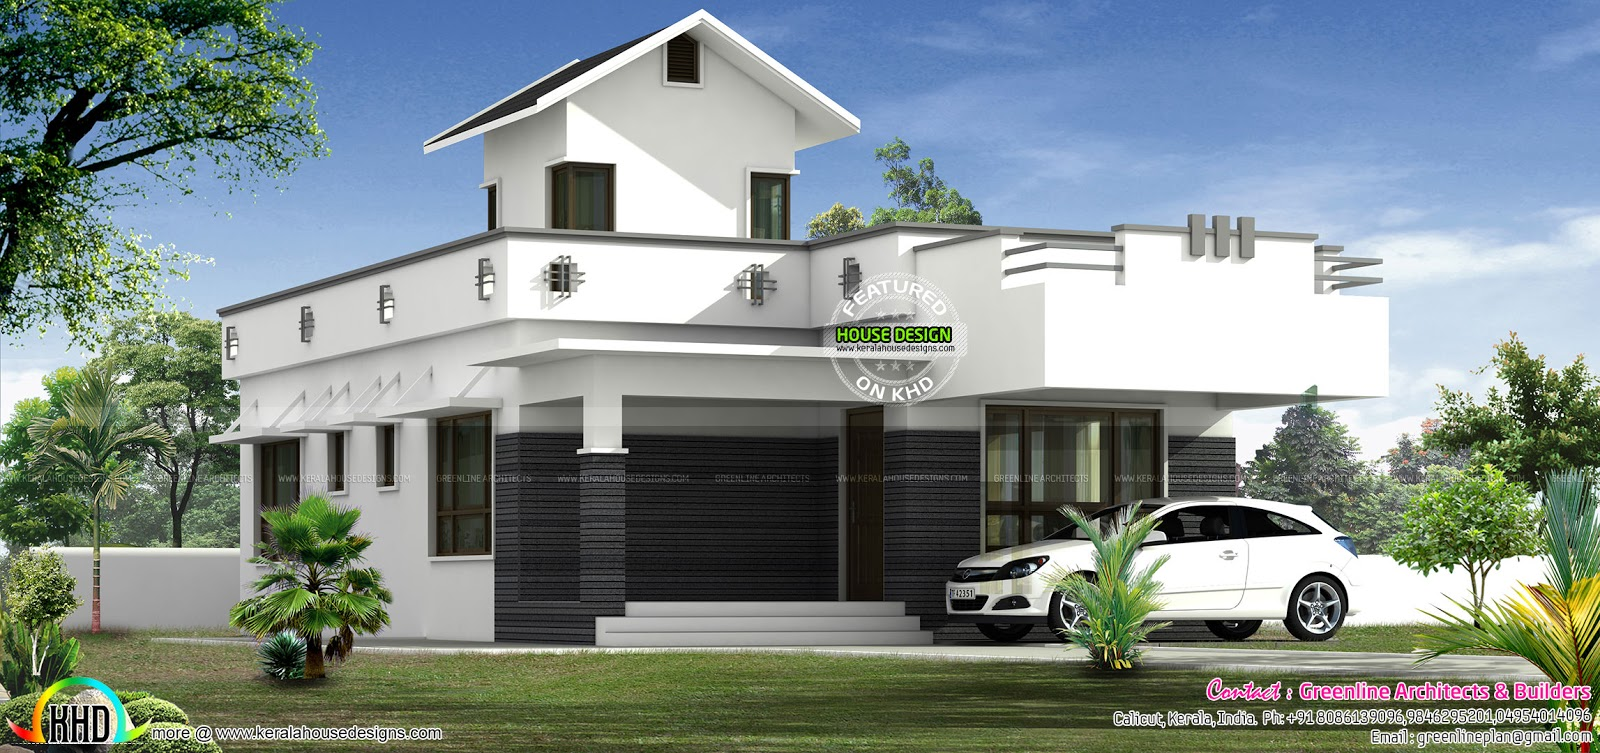 1000 sq ft 15 lakhs budget home kerala home design bloglovin 1000 sq ft 15 lakhs budget home